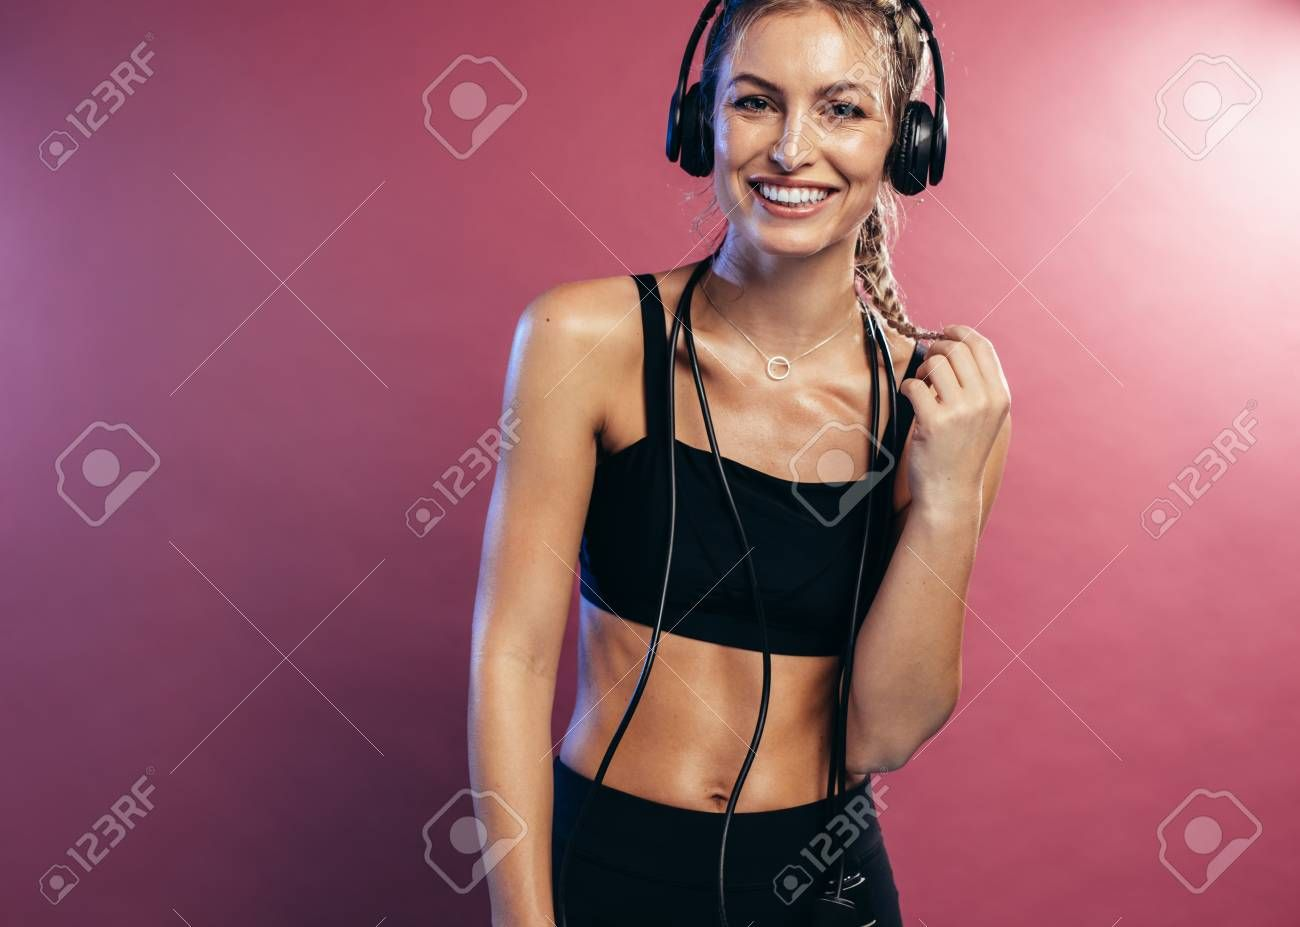 Fitness woman in sportswear and headphones on colored background. Smiling sports woman resting after...